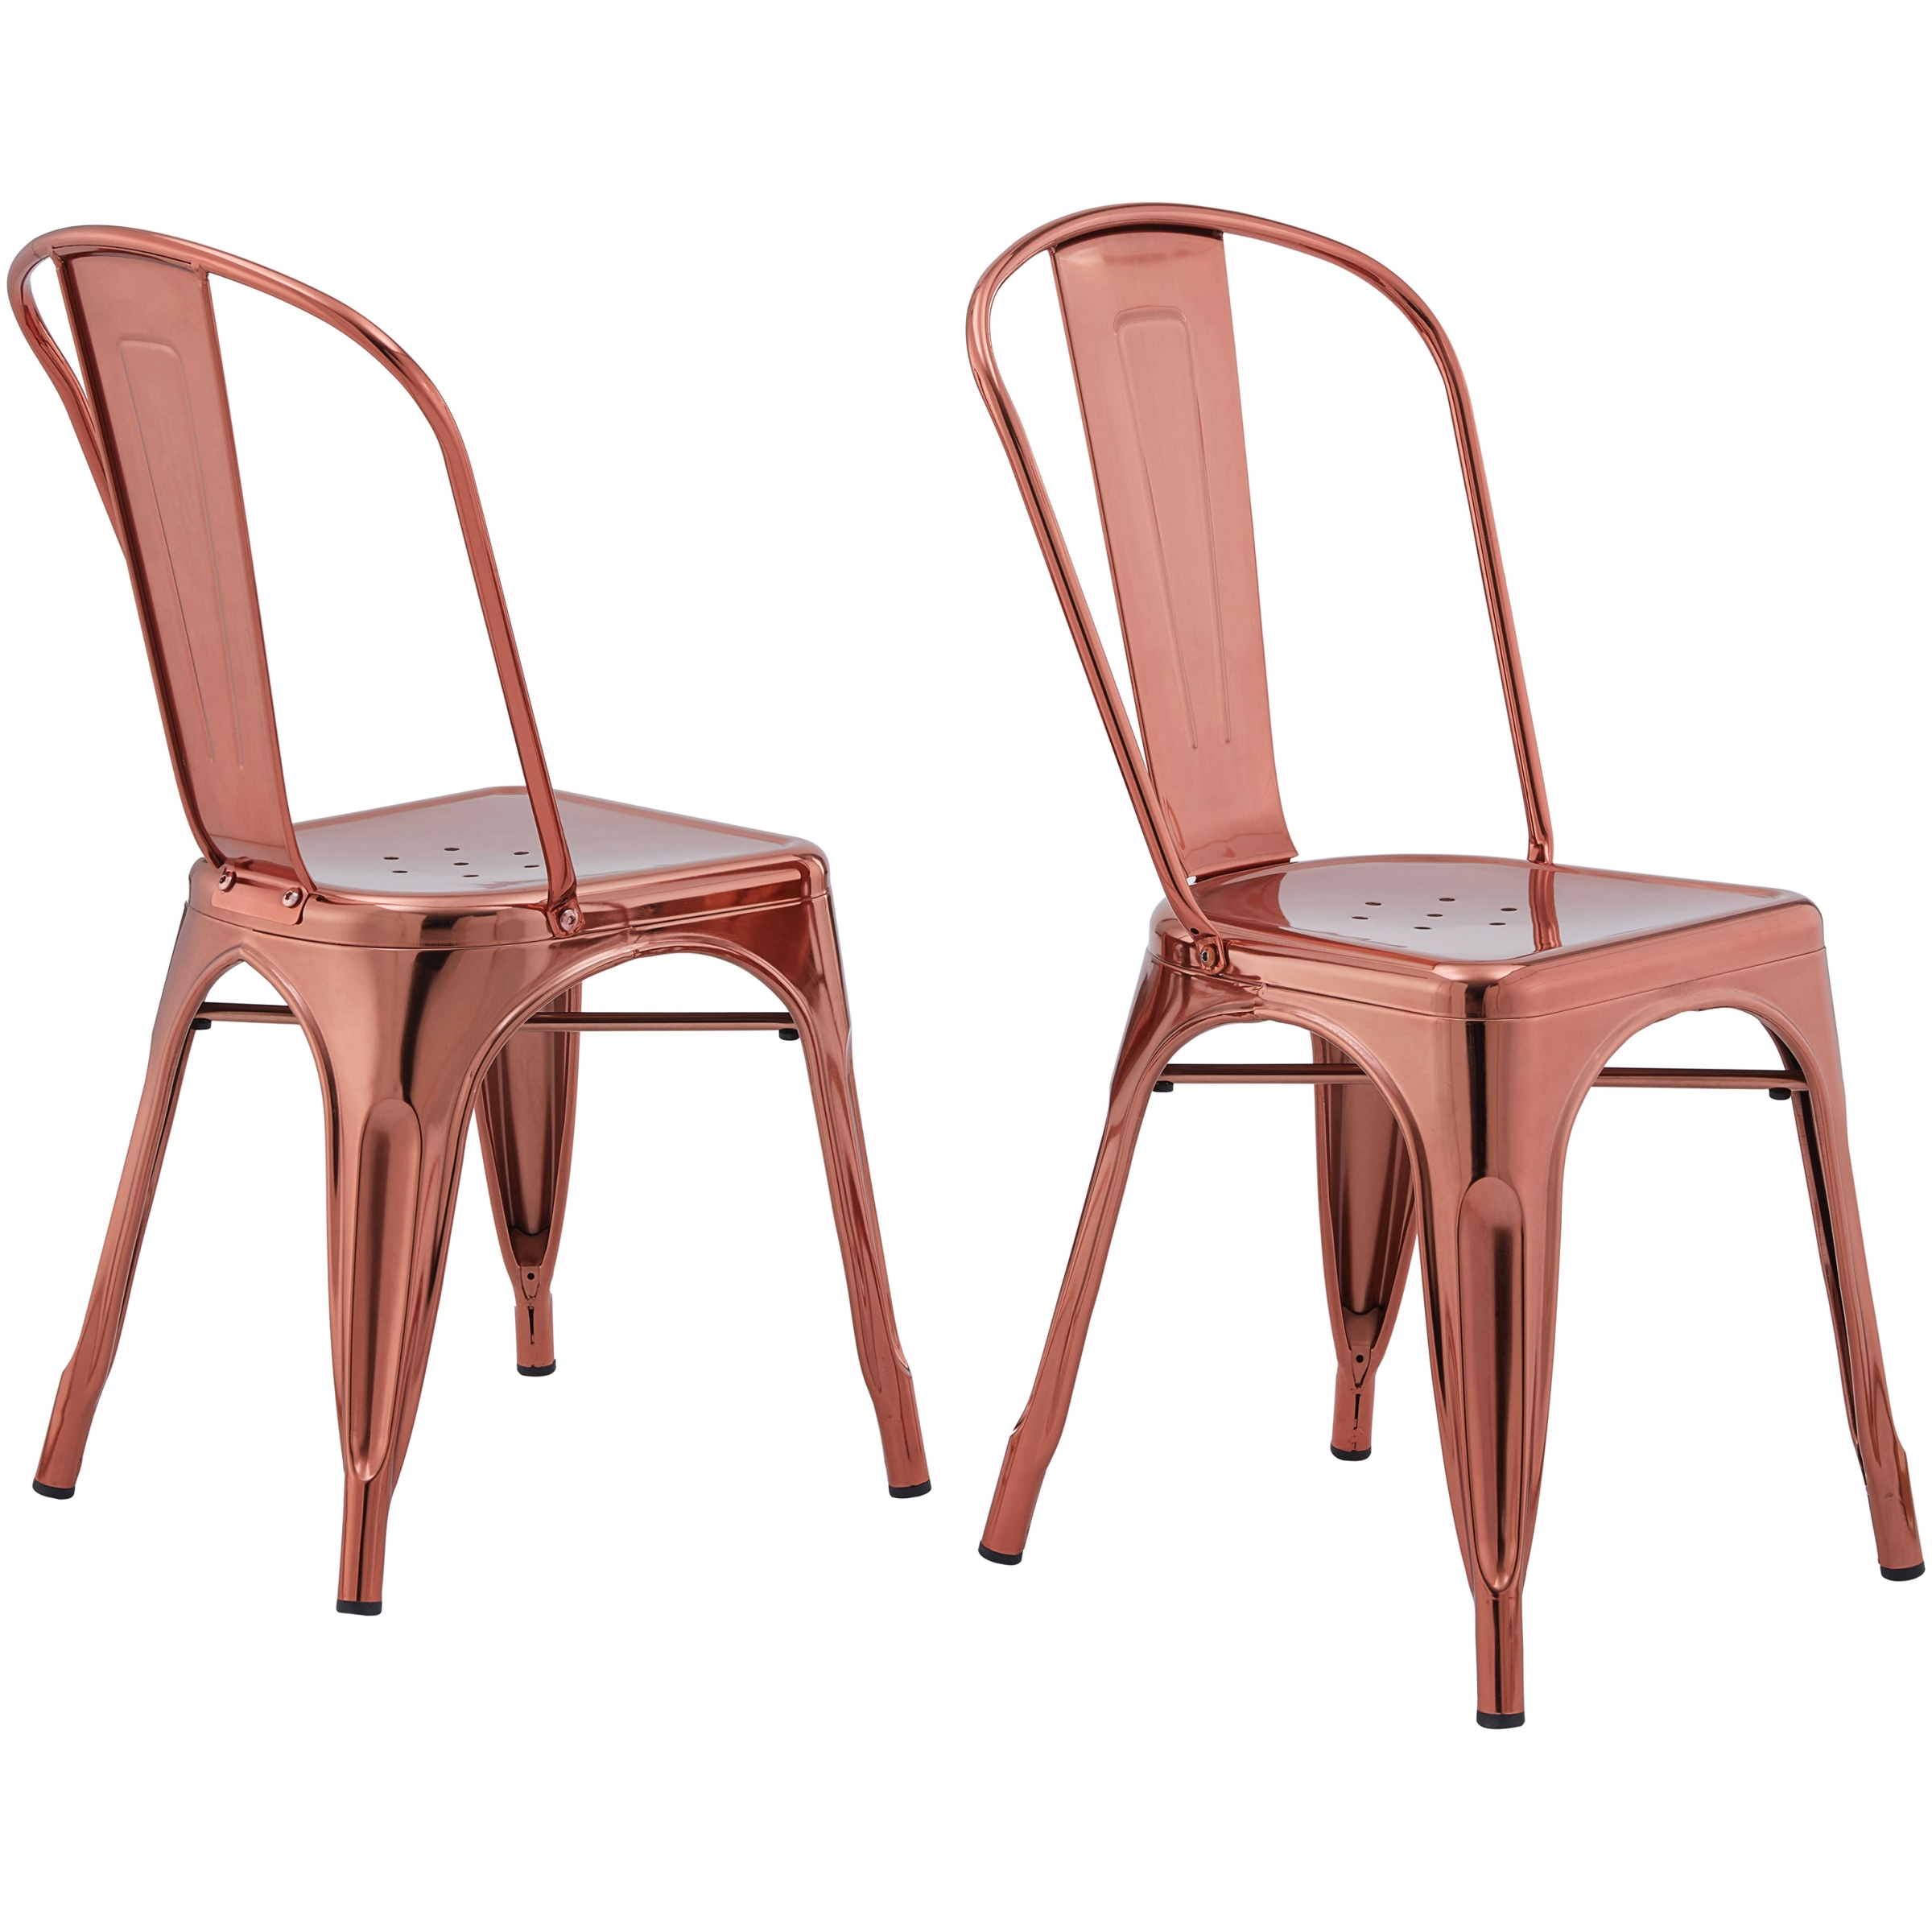 Better Homes & Gardens Leo Dining Chairs, Set of 2, Rose Gold